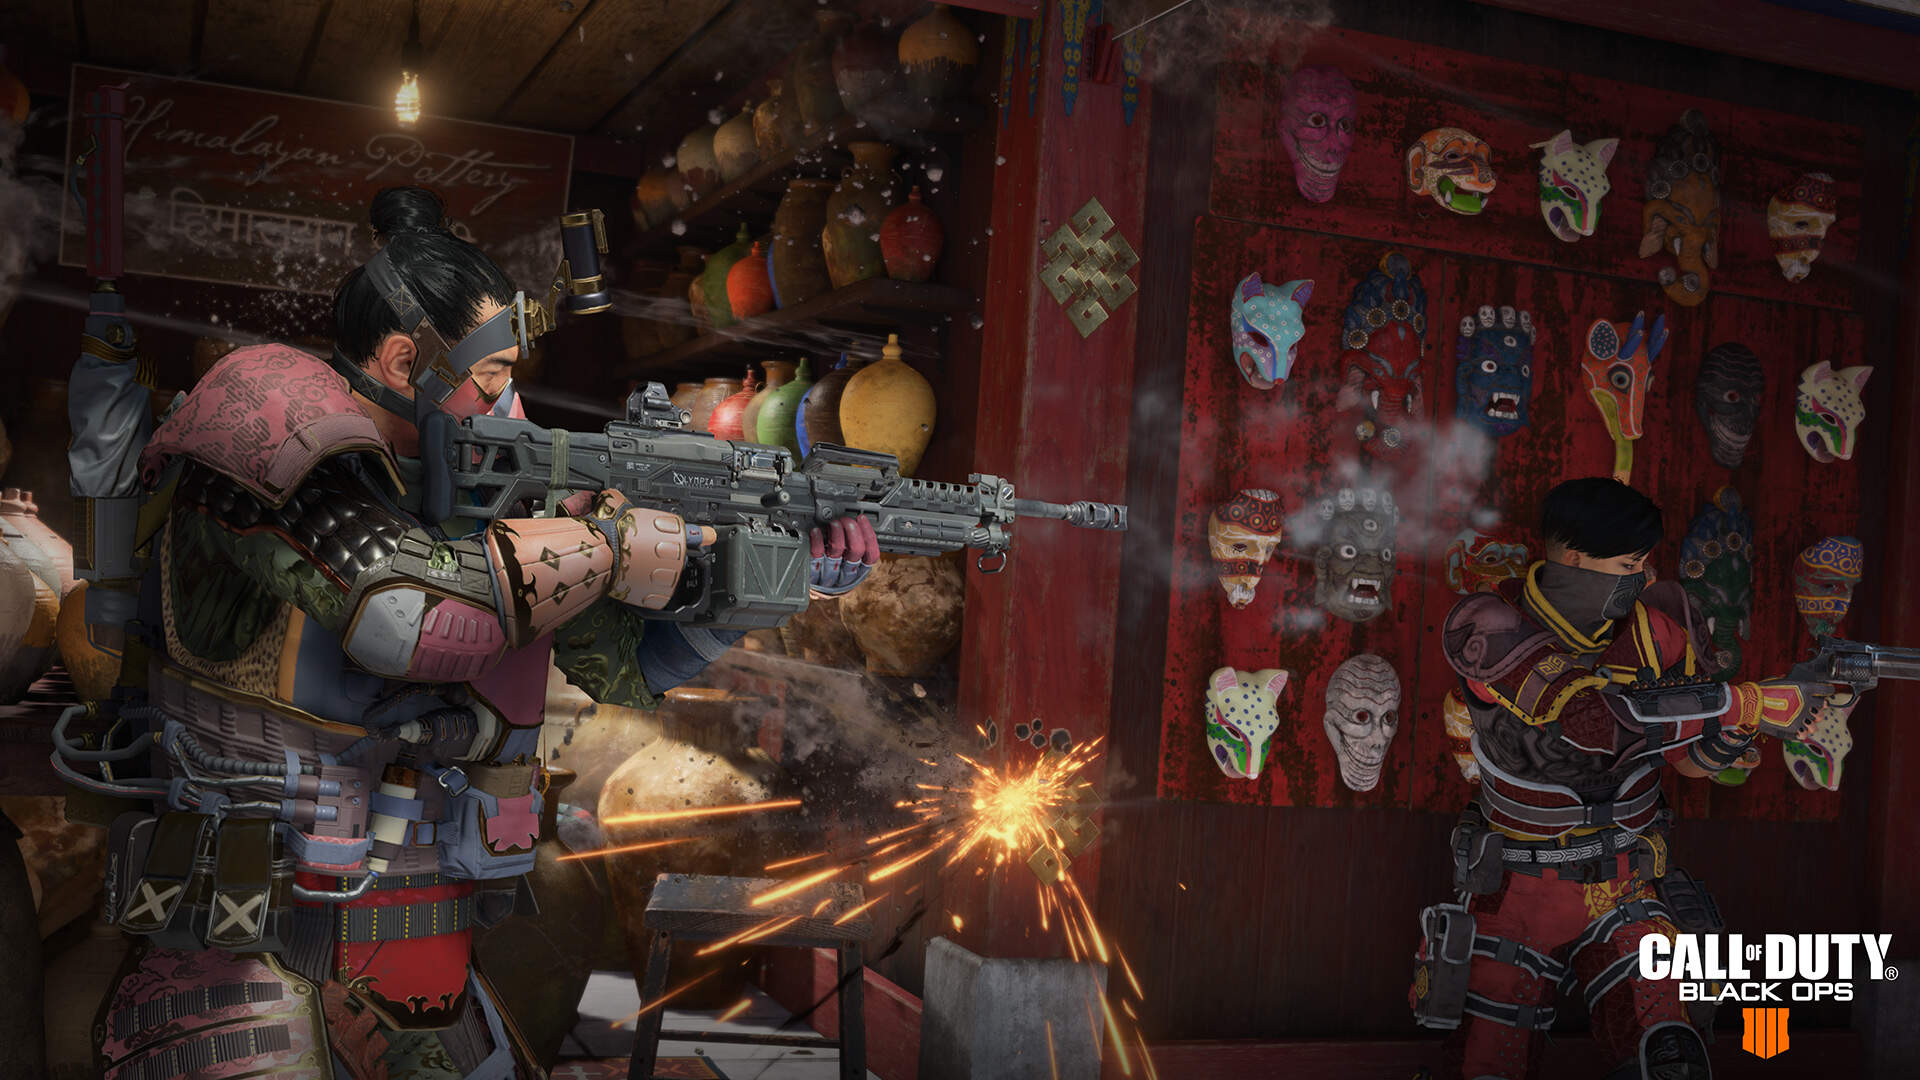 Call of Duty: Black Ops 4's Best Plays Keep Focusing on Mundane Kills While Missing Amazing Highlights